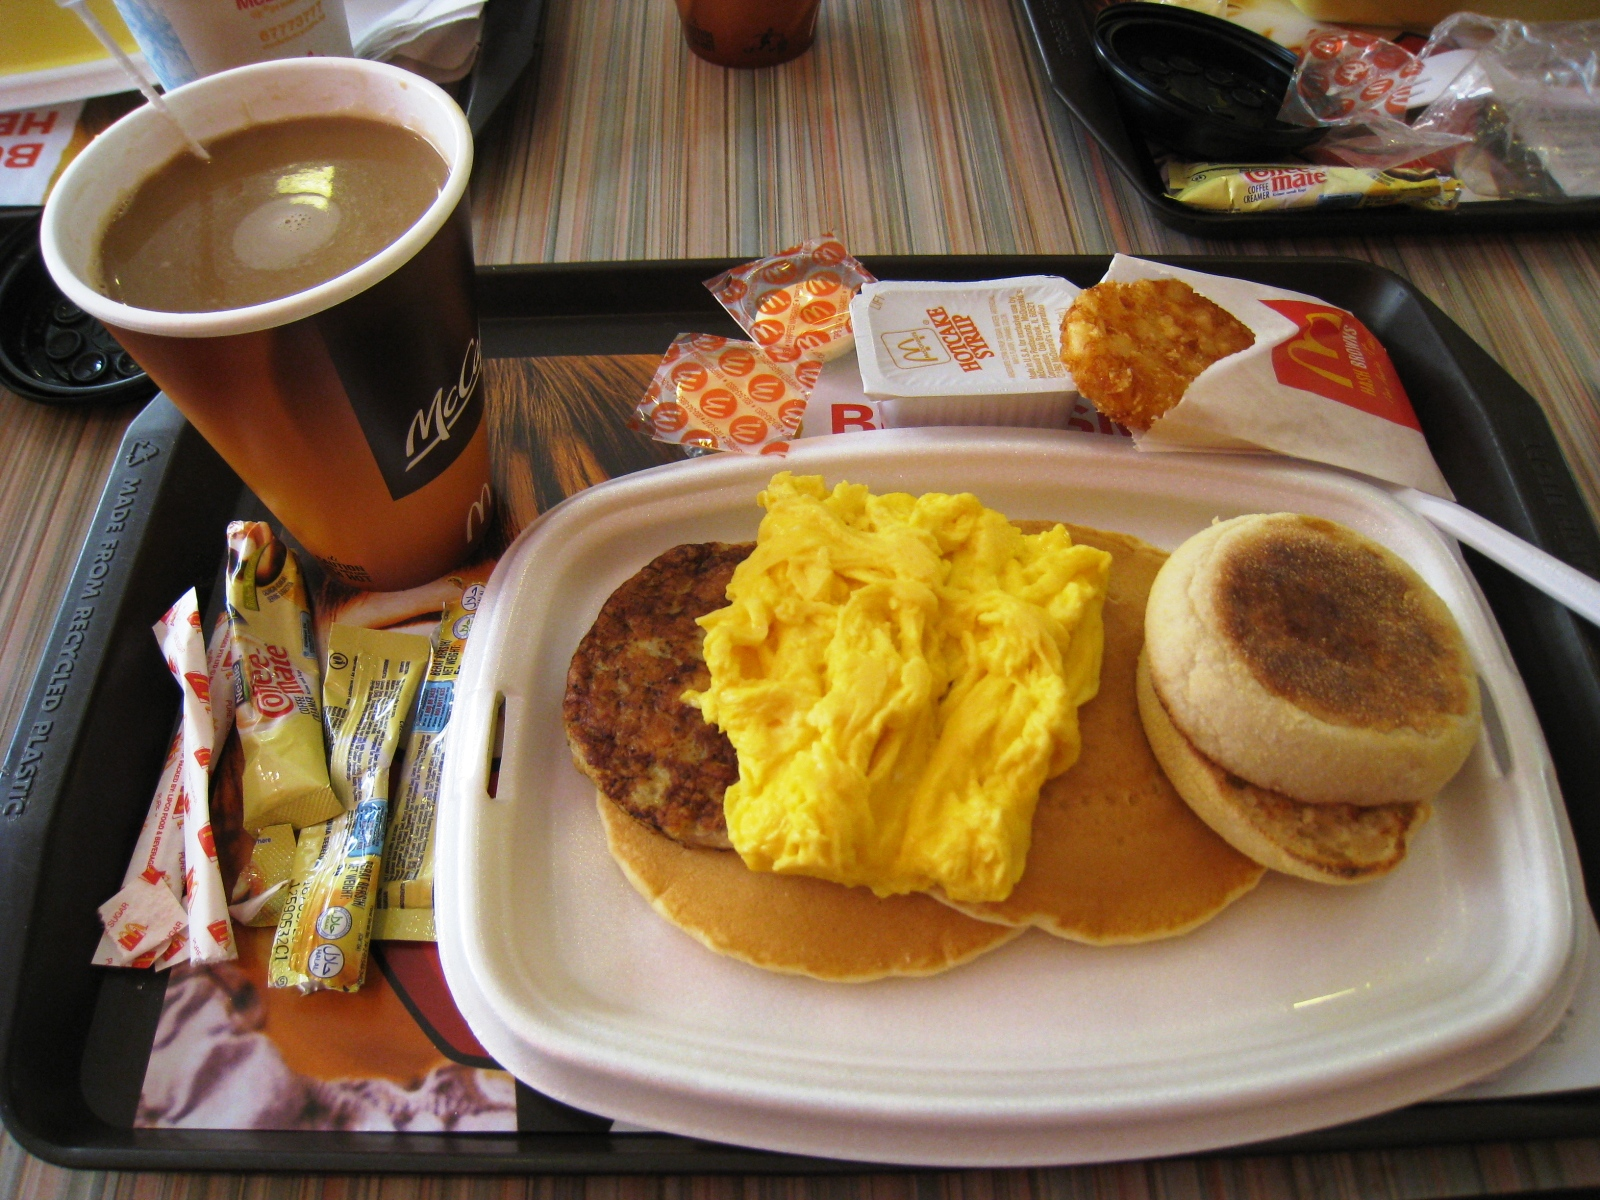 Mcdonald's big breakfast bacon sausage scrambled with hotcakes and muffin